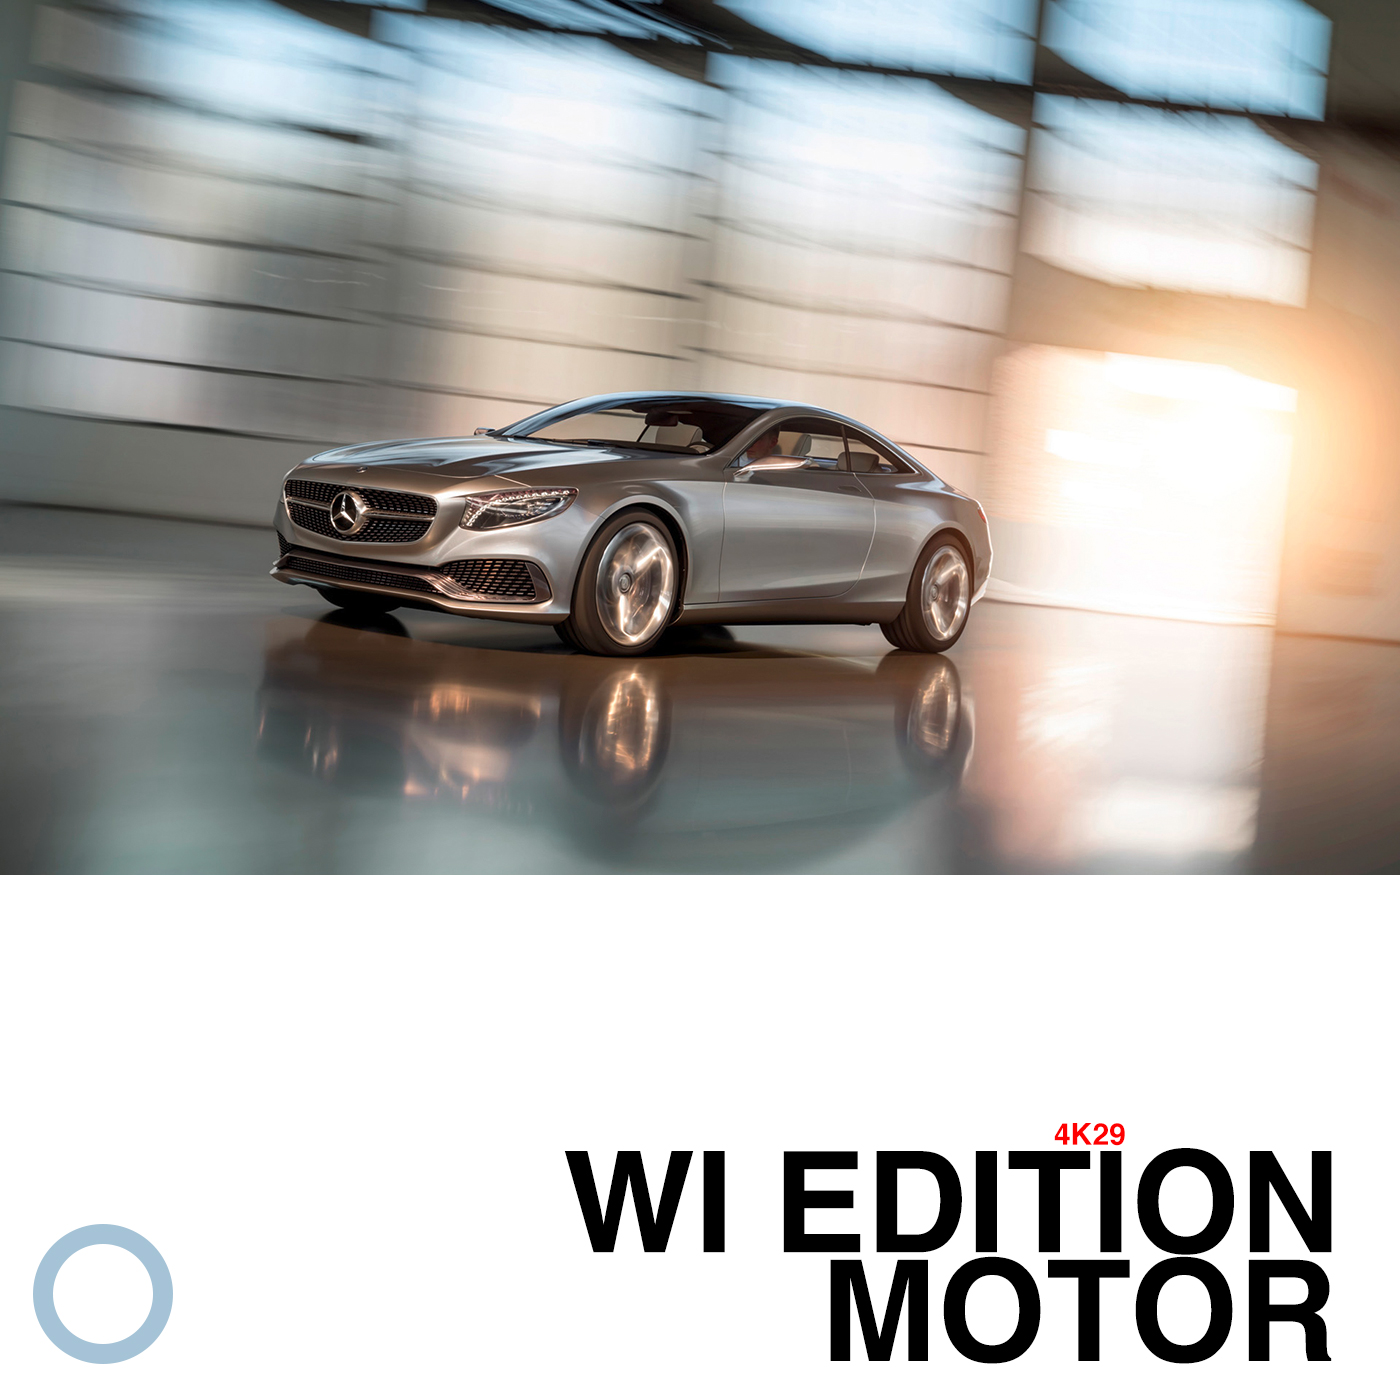 WI EDITION MOTOR 4K29